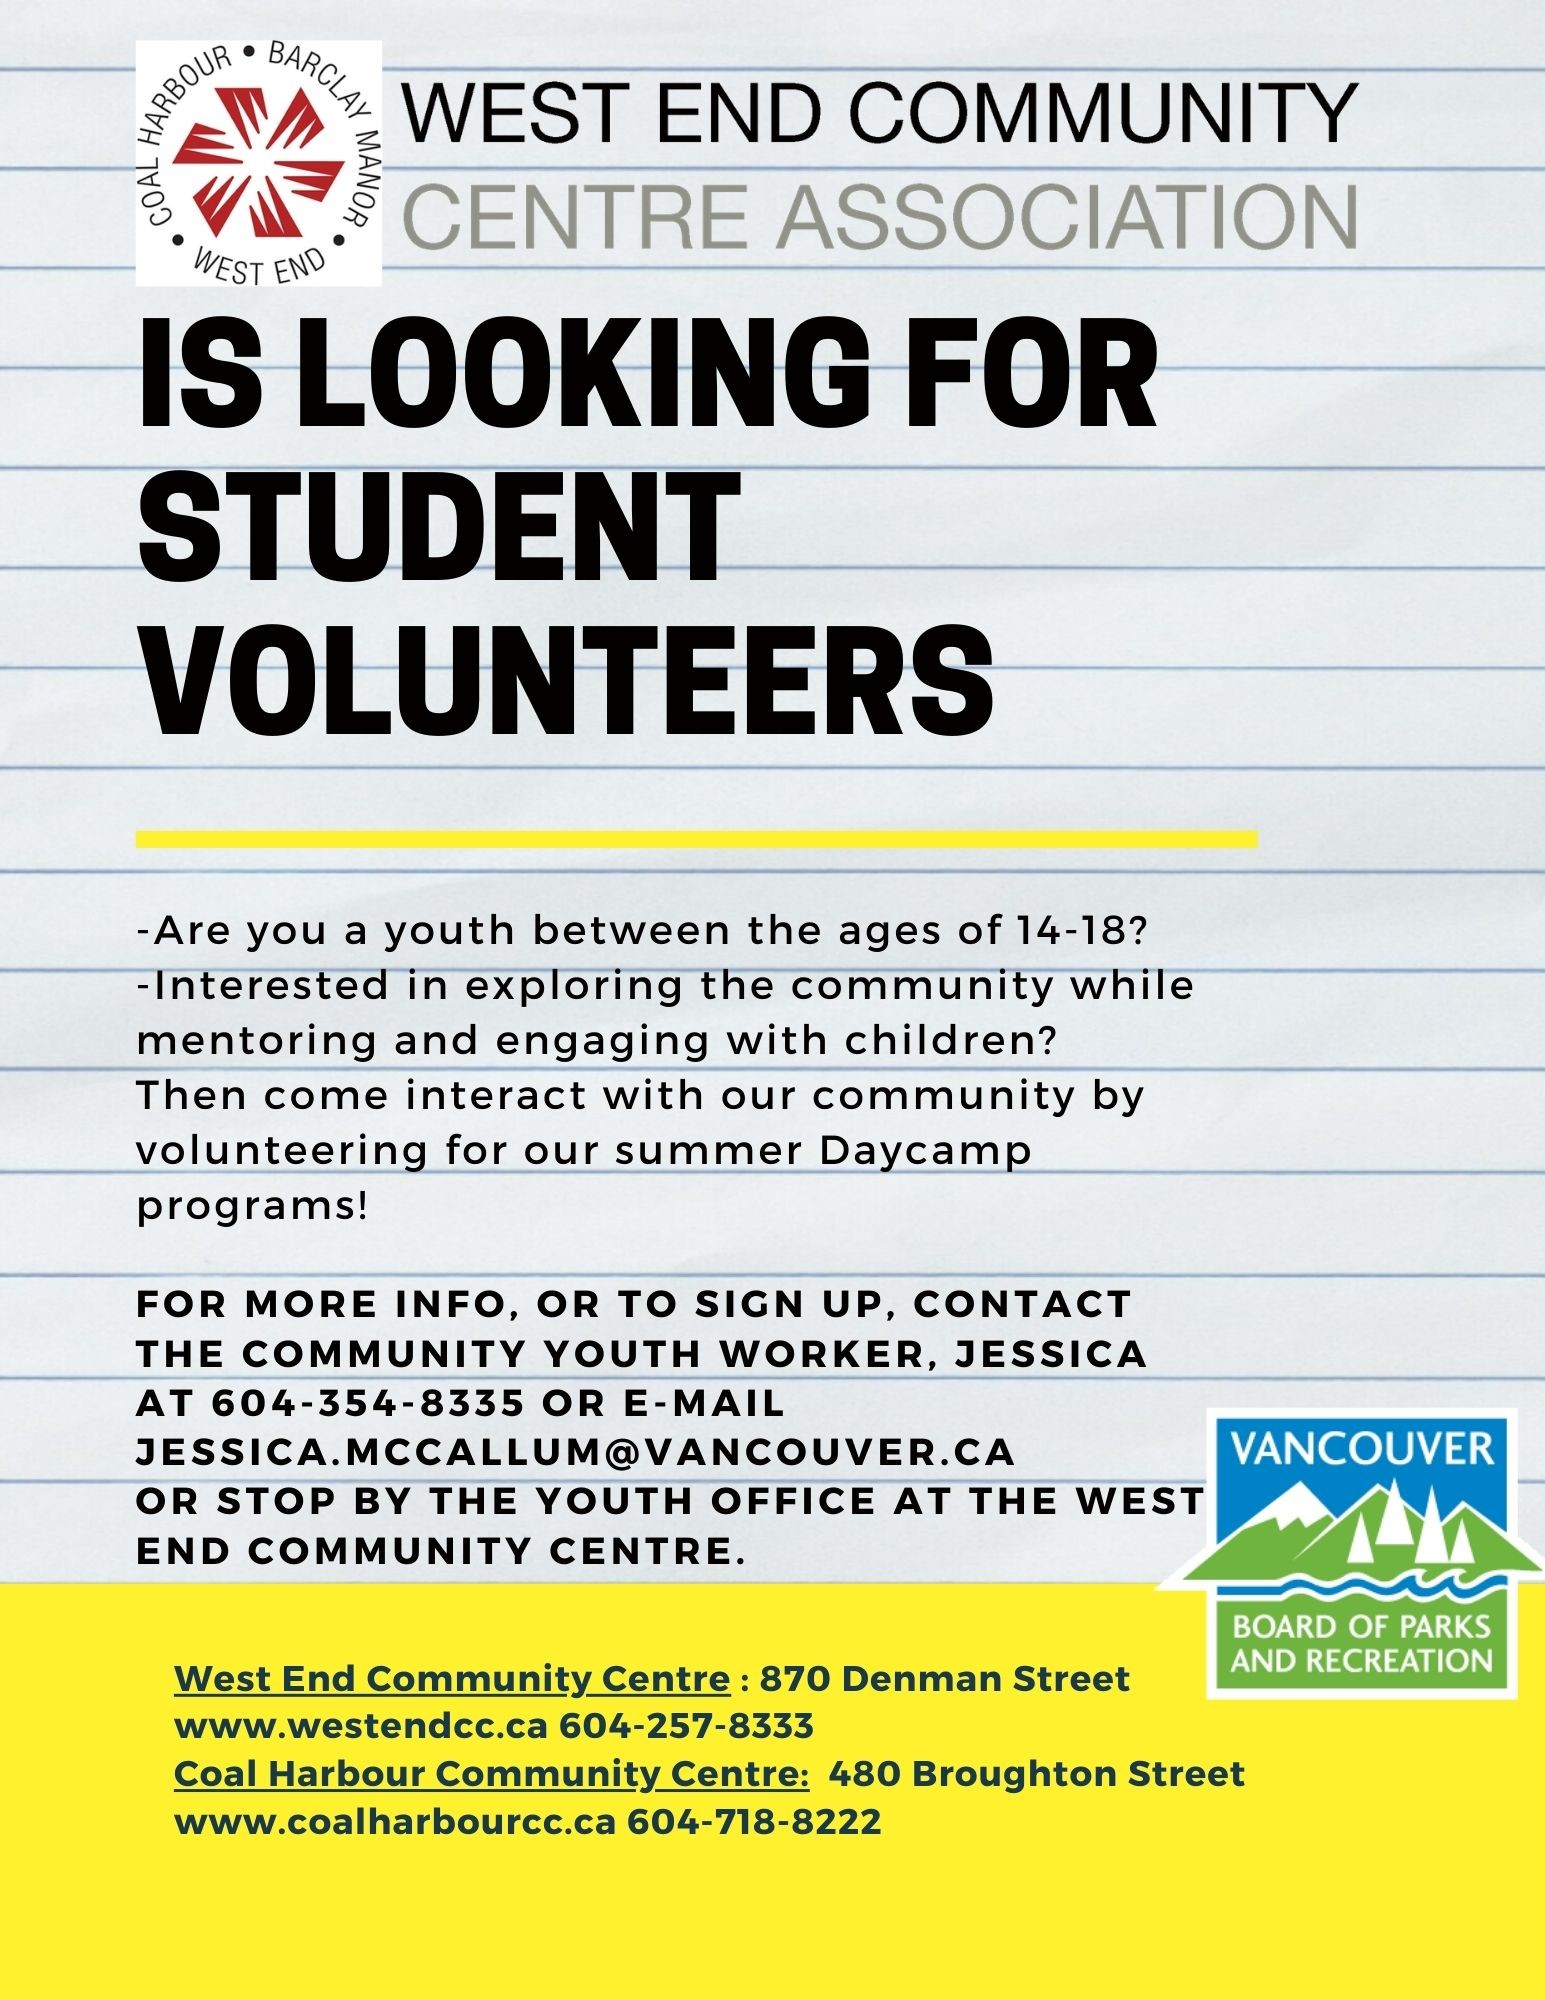 Looking for Student Volunteers Are you a youth between the ages of 14-18? Then come and interact with our community by volunteering for our summer day camp programs For more info contact Jessica at jessica@mccallum@vancouver.ca or stop by the WECC youth office